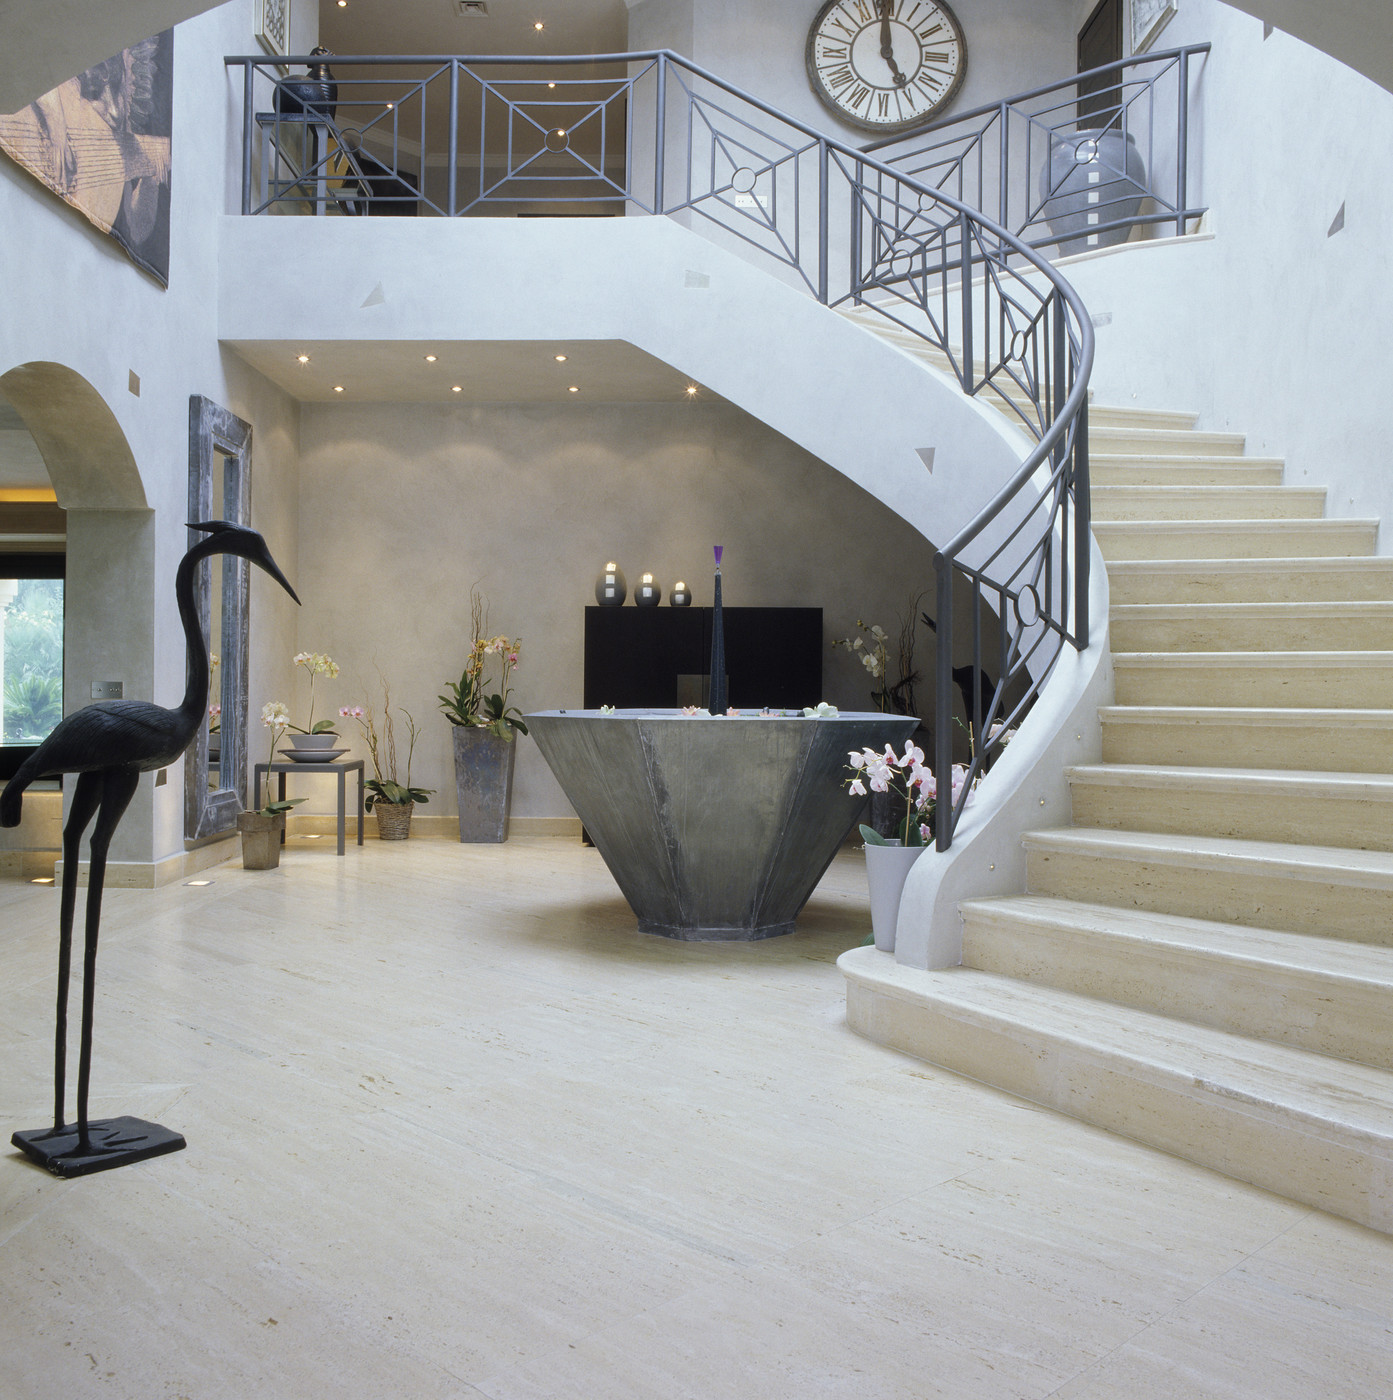 Sculptural features in a modern foyer